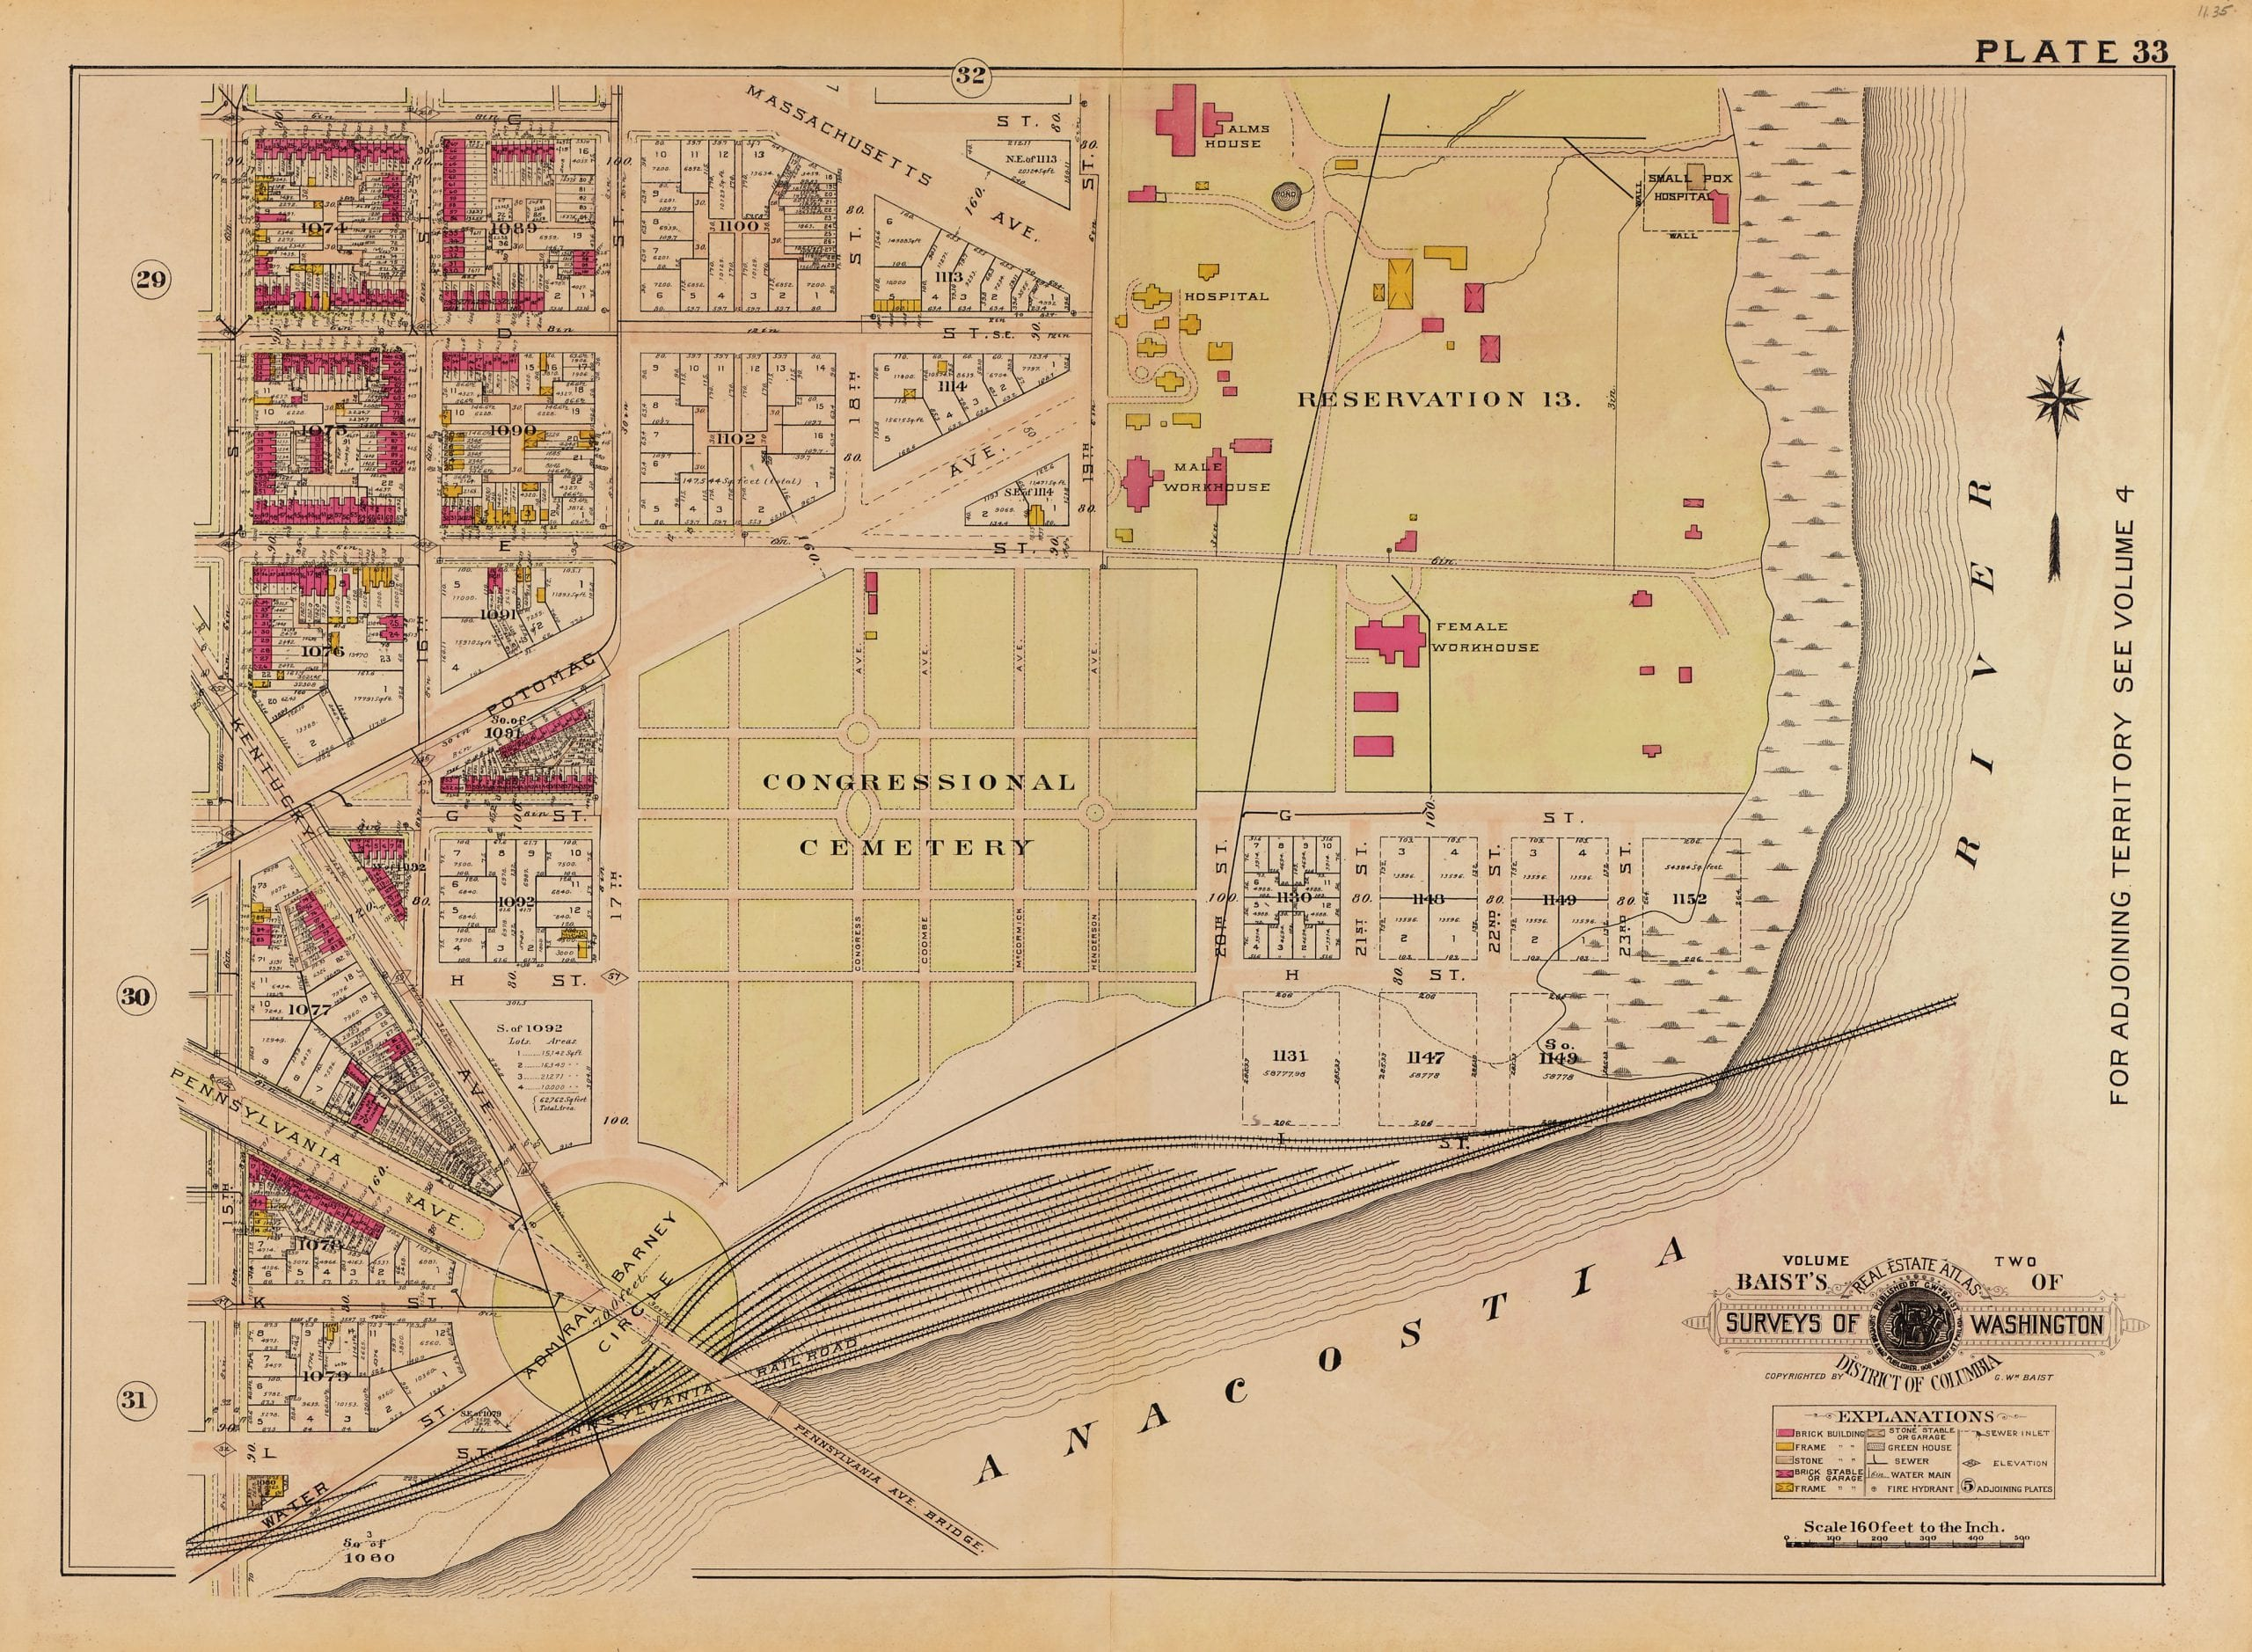 1915 map of the area around Congressional Cemetery